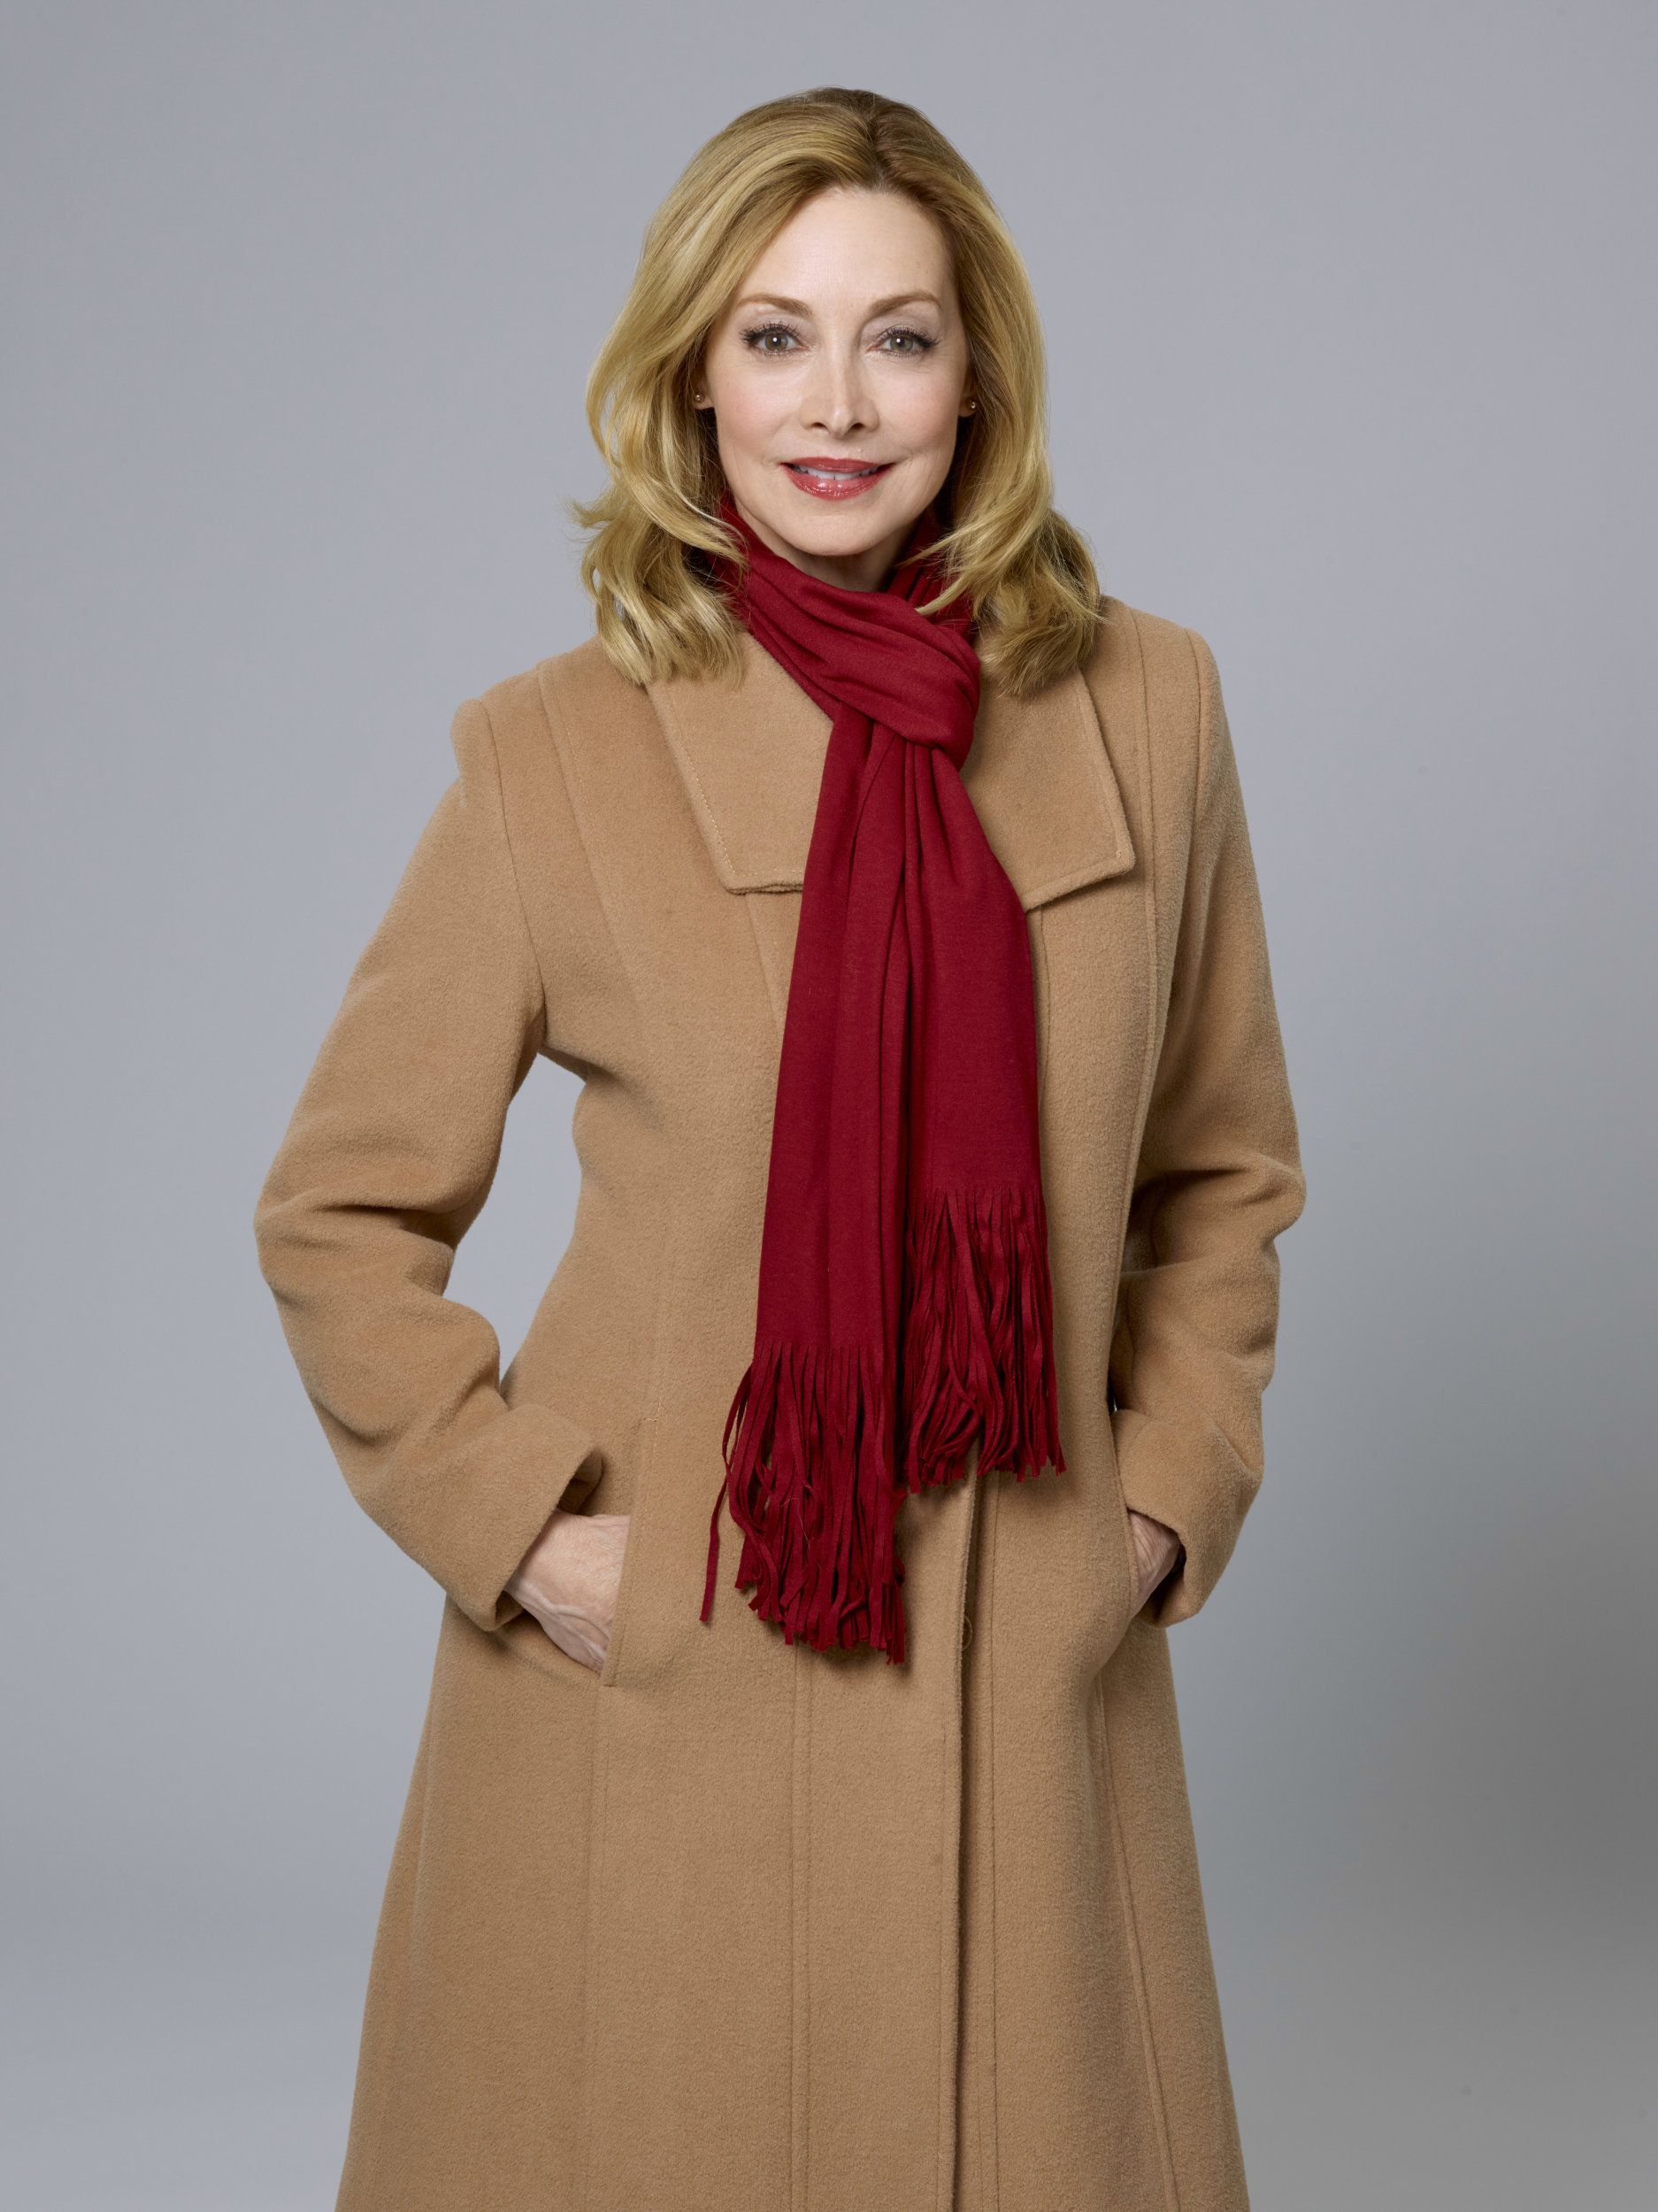 Find out more about the cast of the Hallmark Channel